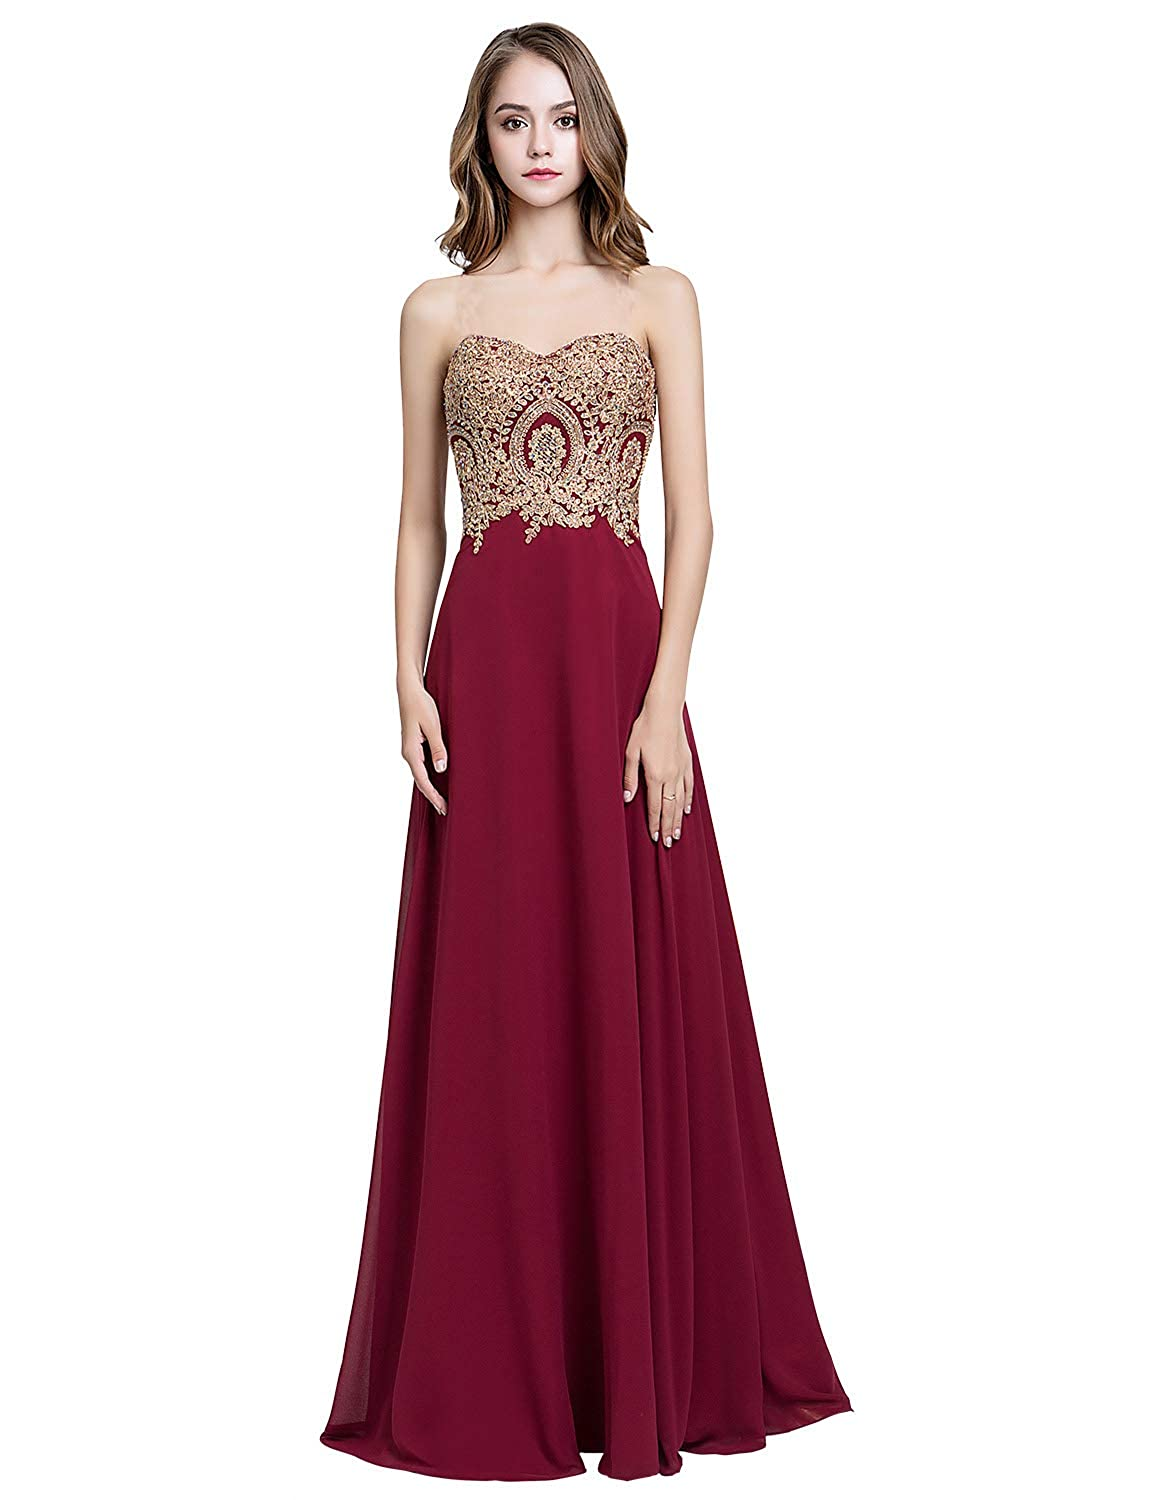 7b714c63b4e Sarahbridal Juniors Sweetheart Bridesmaid Dresses Chiffon Long Prom Evening  Gown Pleated at Amazon Women s Clothing store